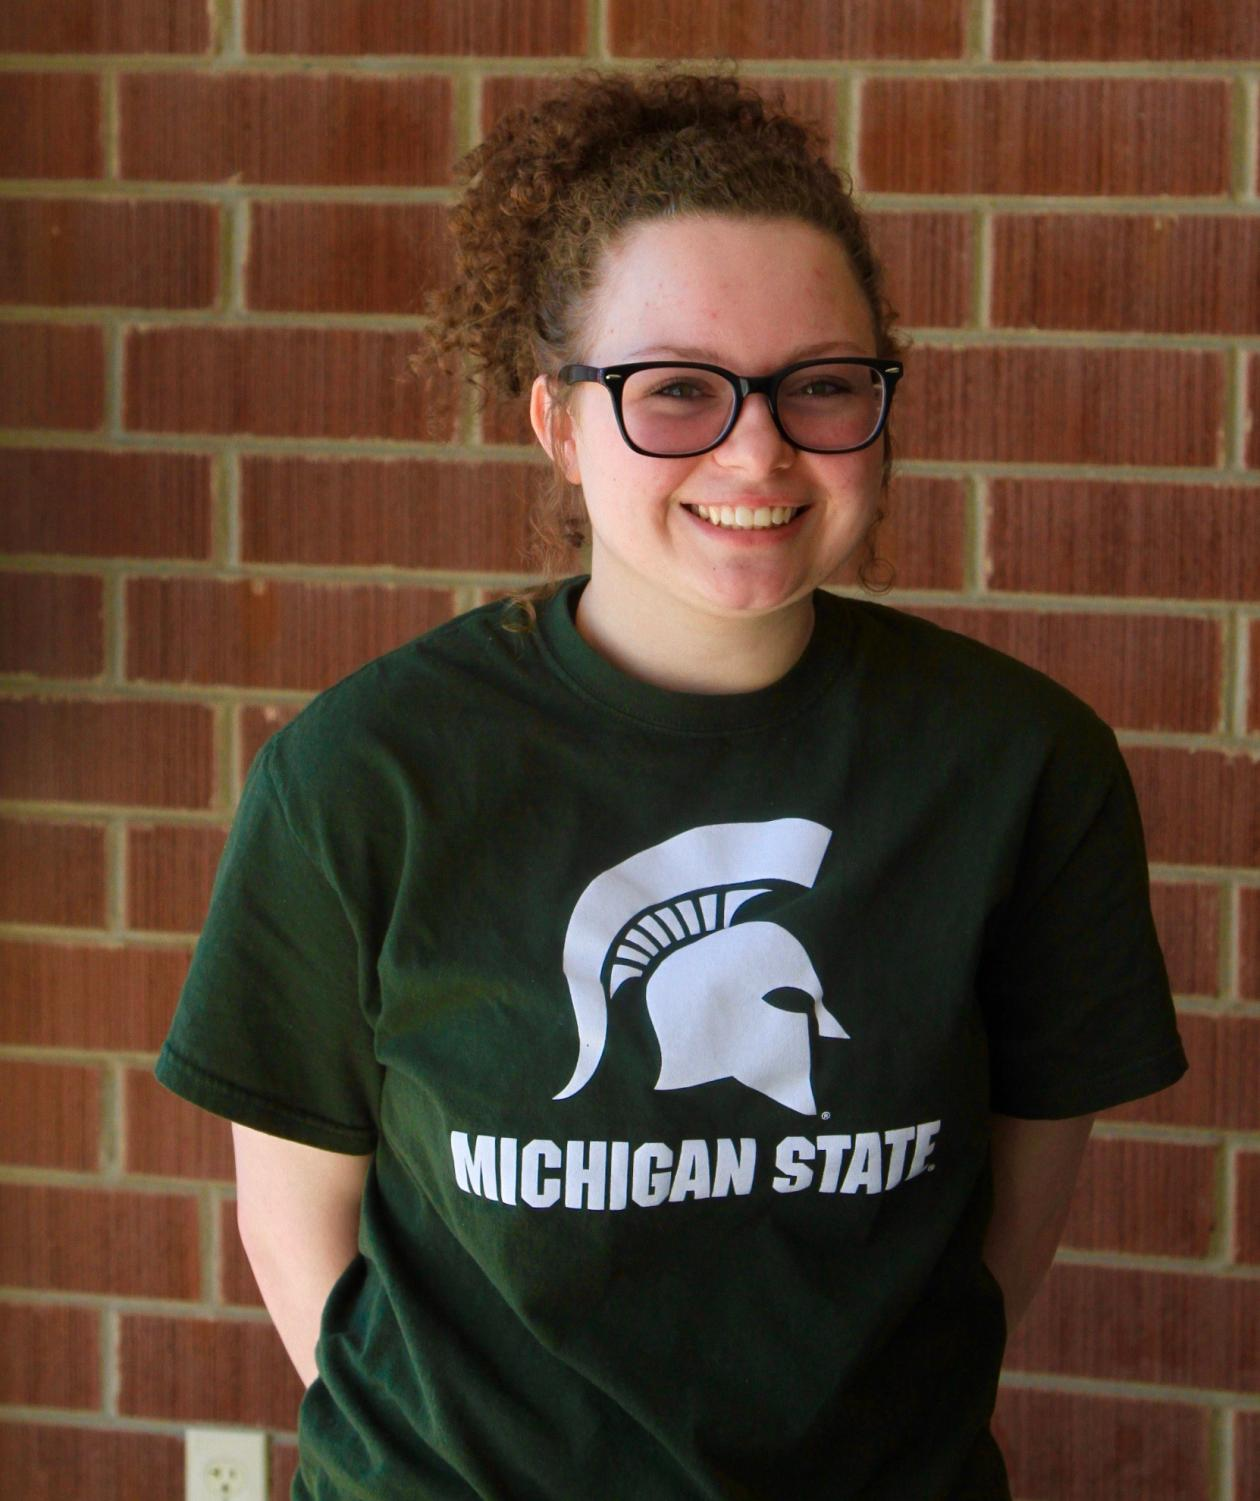 Senior Kathleen Farmer smiles poses in her Michigan State T-shirt. Taken by Emmie Baker.